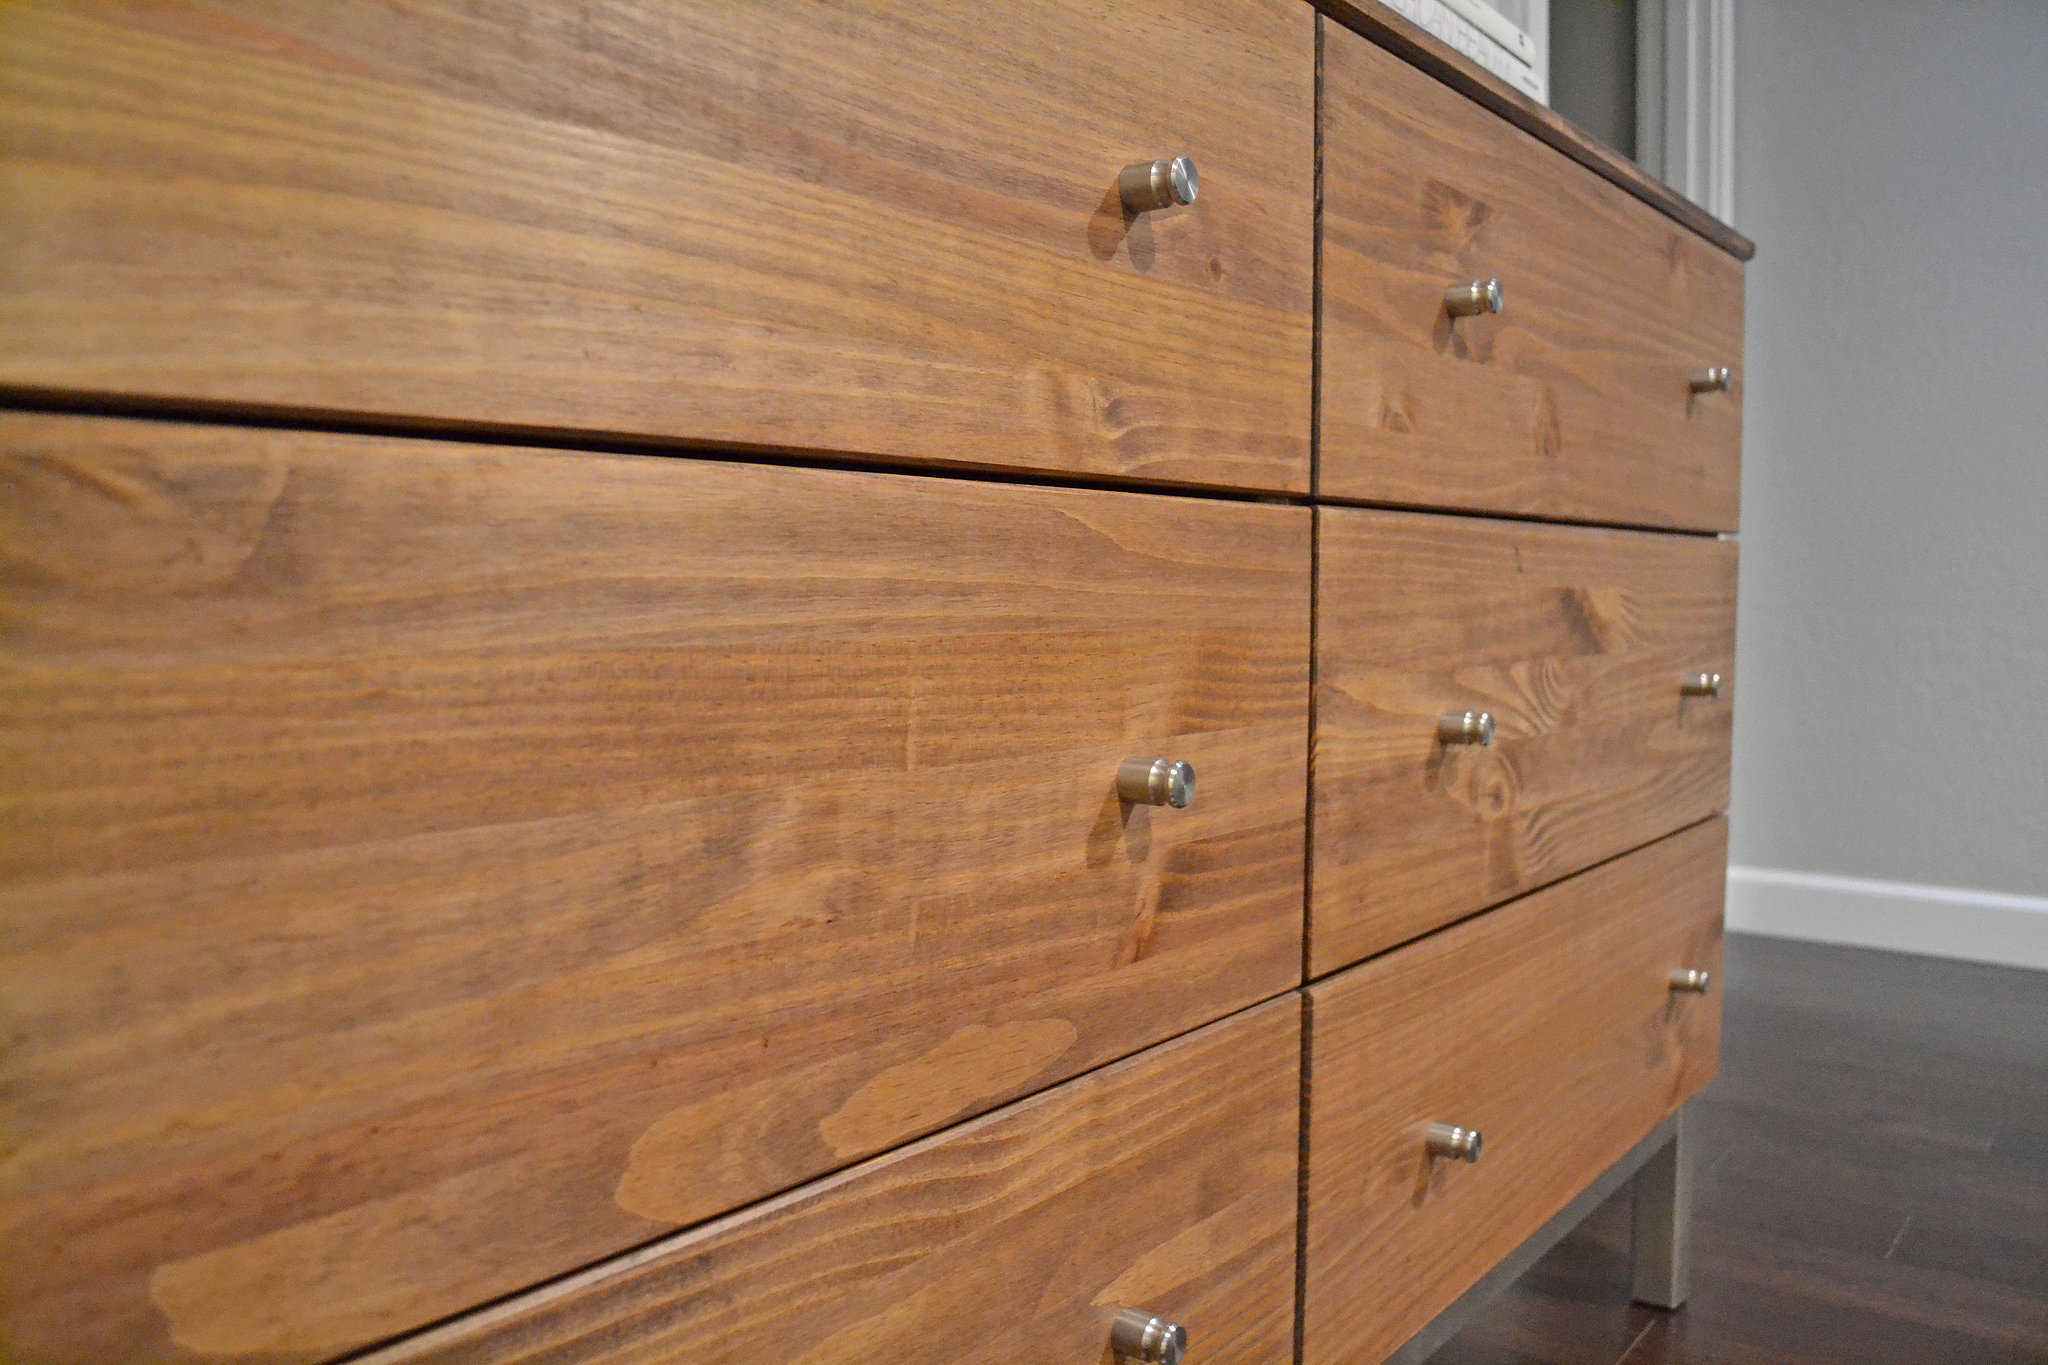 Next, she replaced the Ikea knobs with these stainless steel beauties from Room & Board. Photo: Lauren Turner